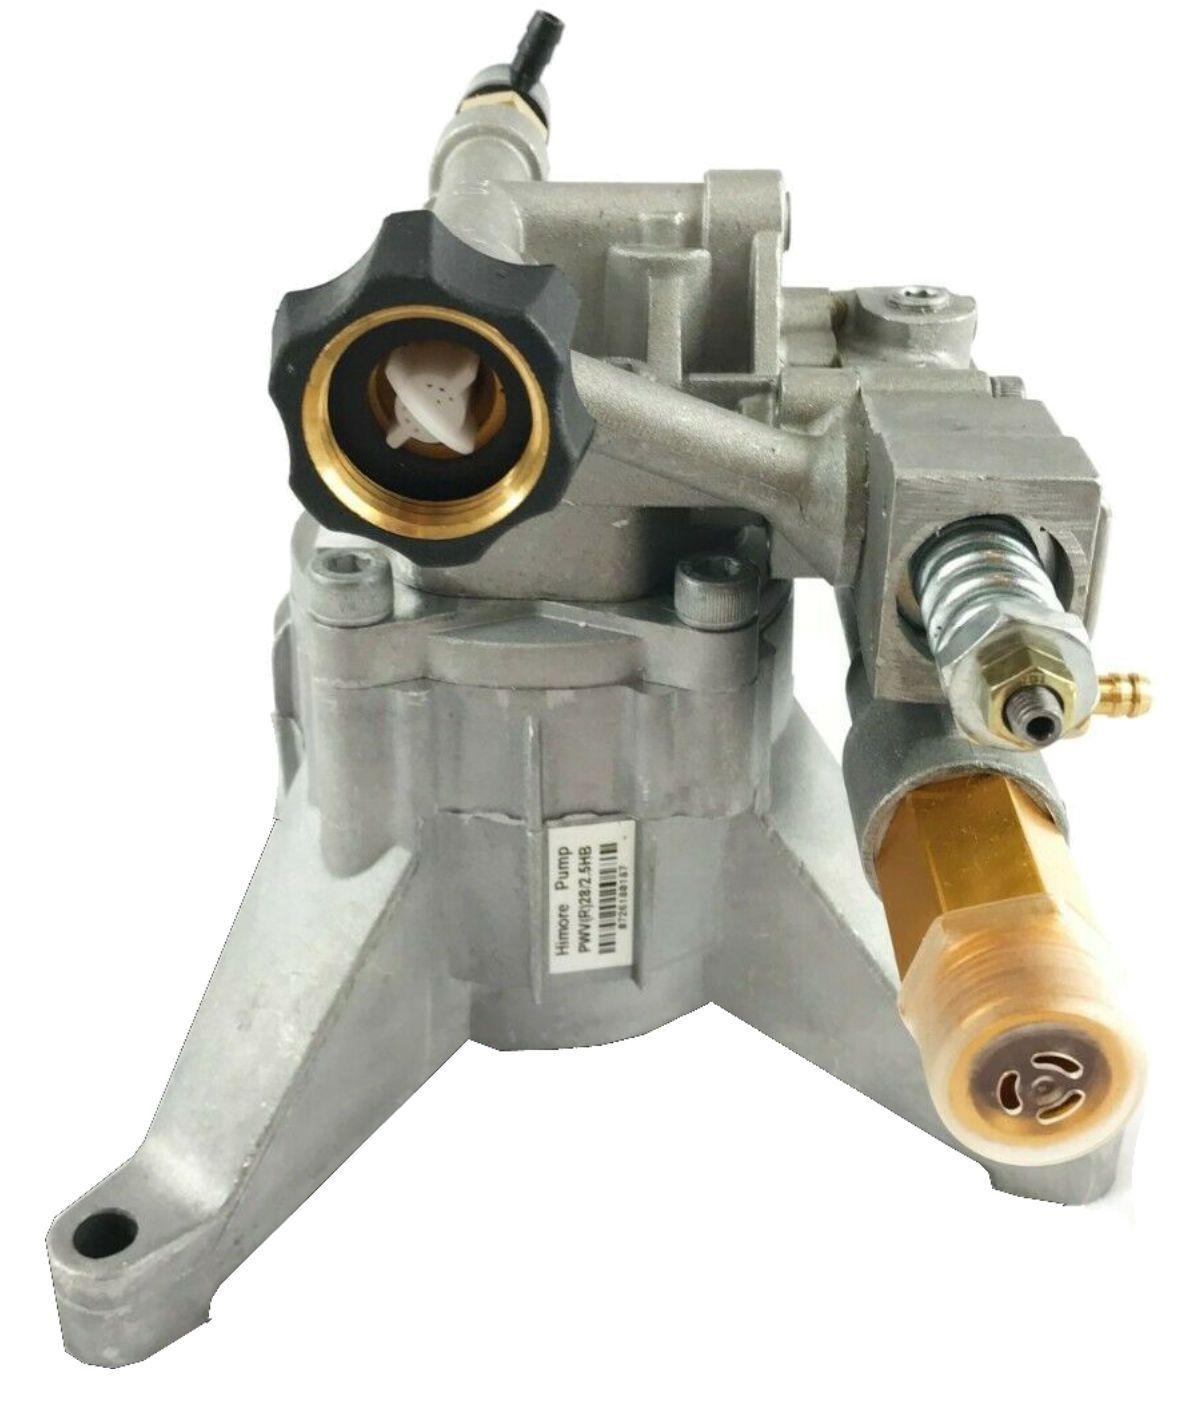 2700 PSI PRESSURE WASHER WATER PUMP Coleman PW0882100 PW0892400 - AE-Power